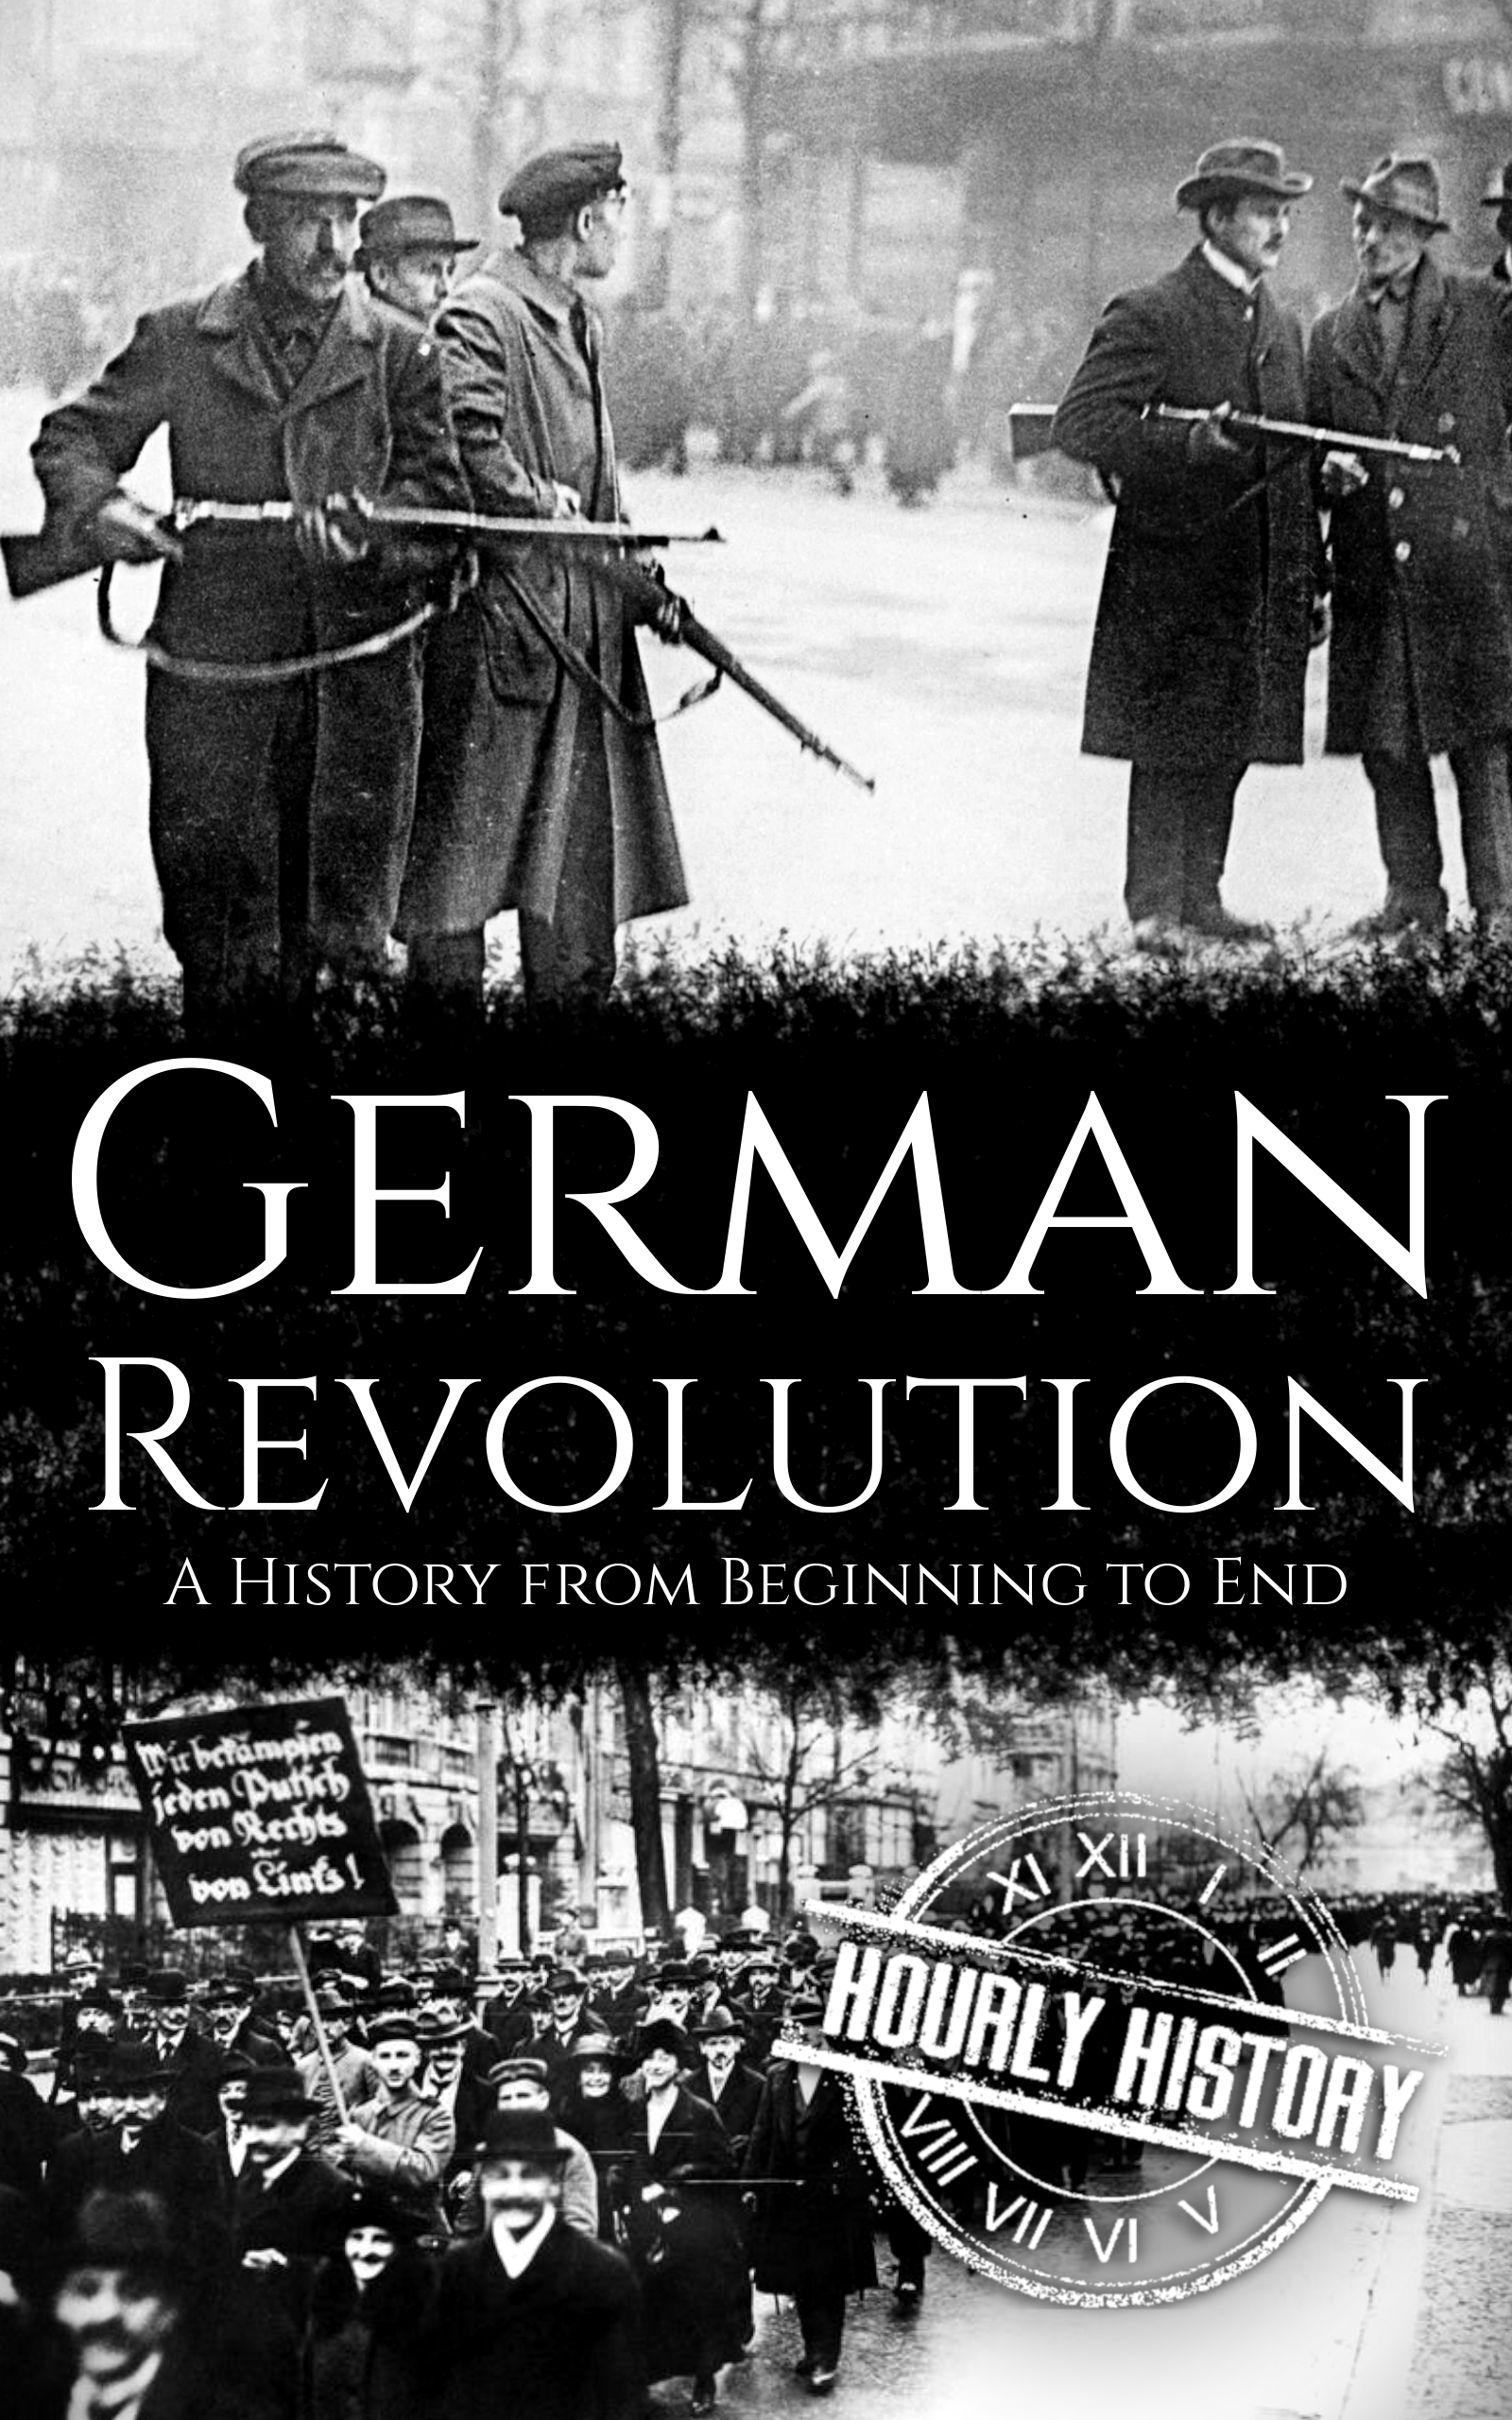 German Revolution: A History from Beginning to End